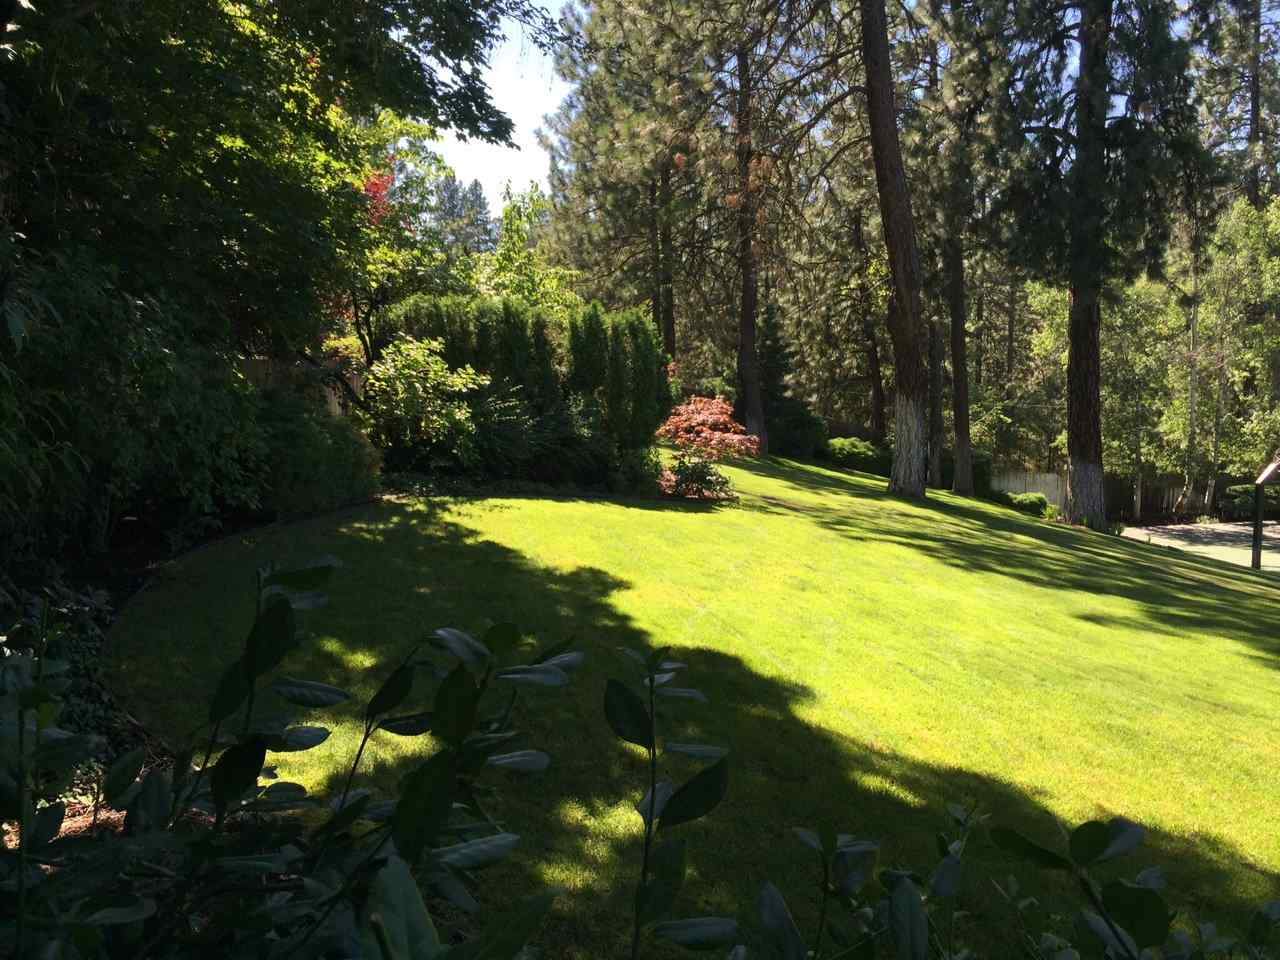 1612 S Crest Hill Dr , Spokane, WA - USA (photo 1)